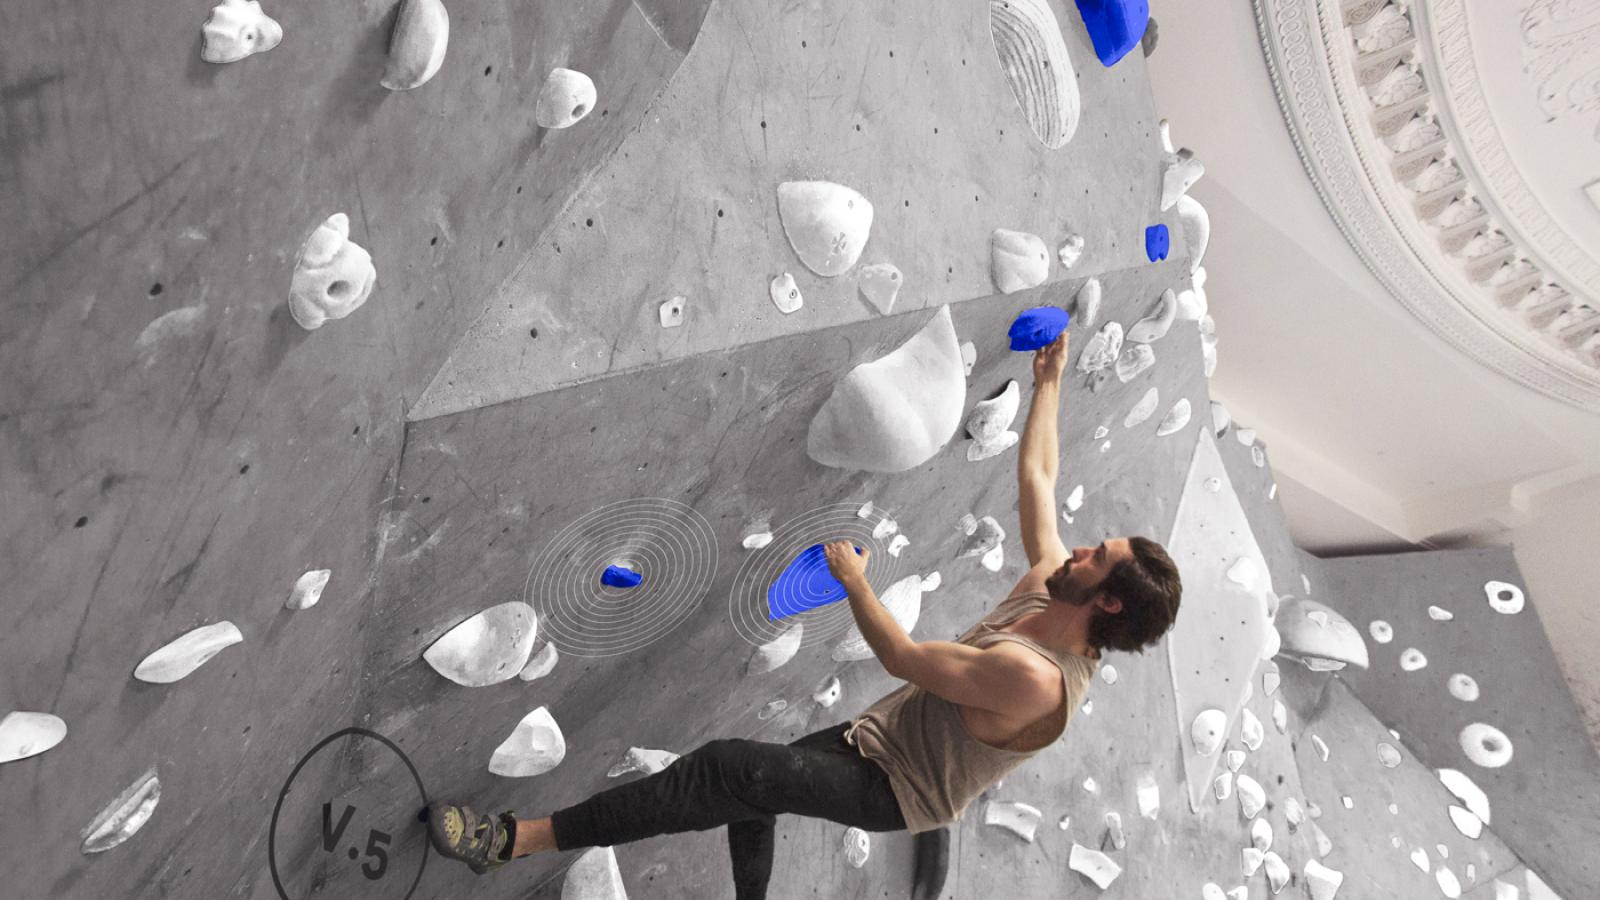 Bouldering with an Augmented Reality